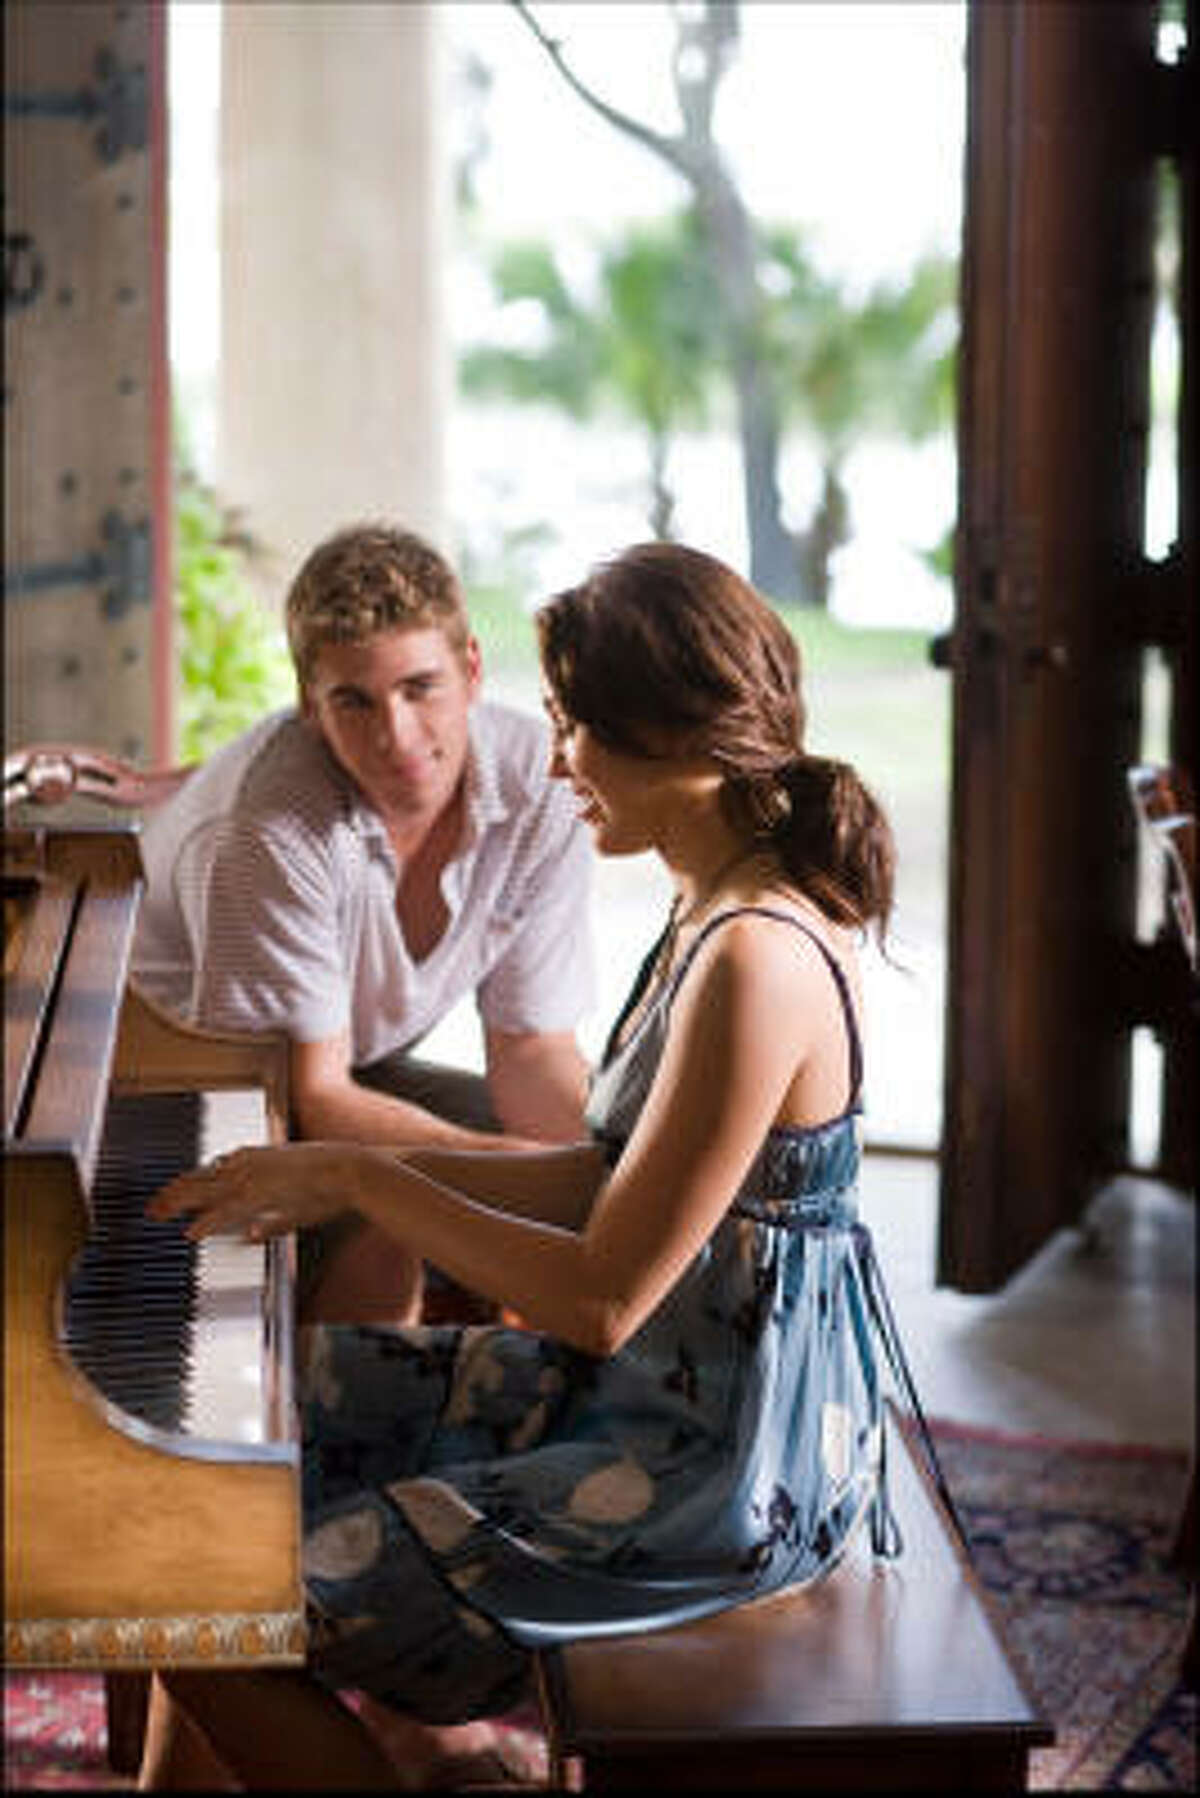 Liam Hemsworth and Miley Cyrus star in The Last Song.